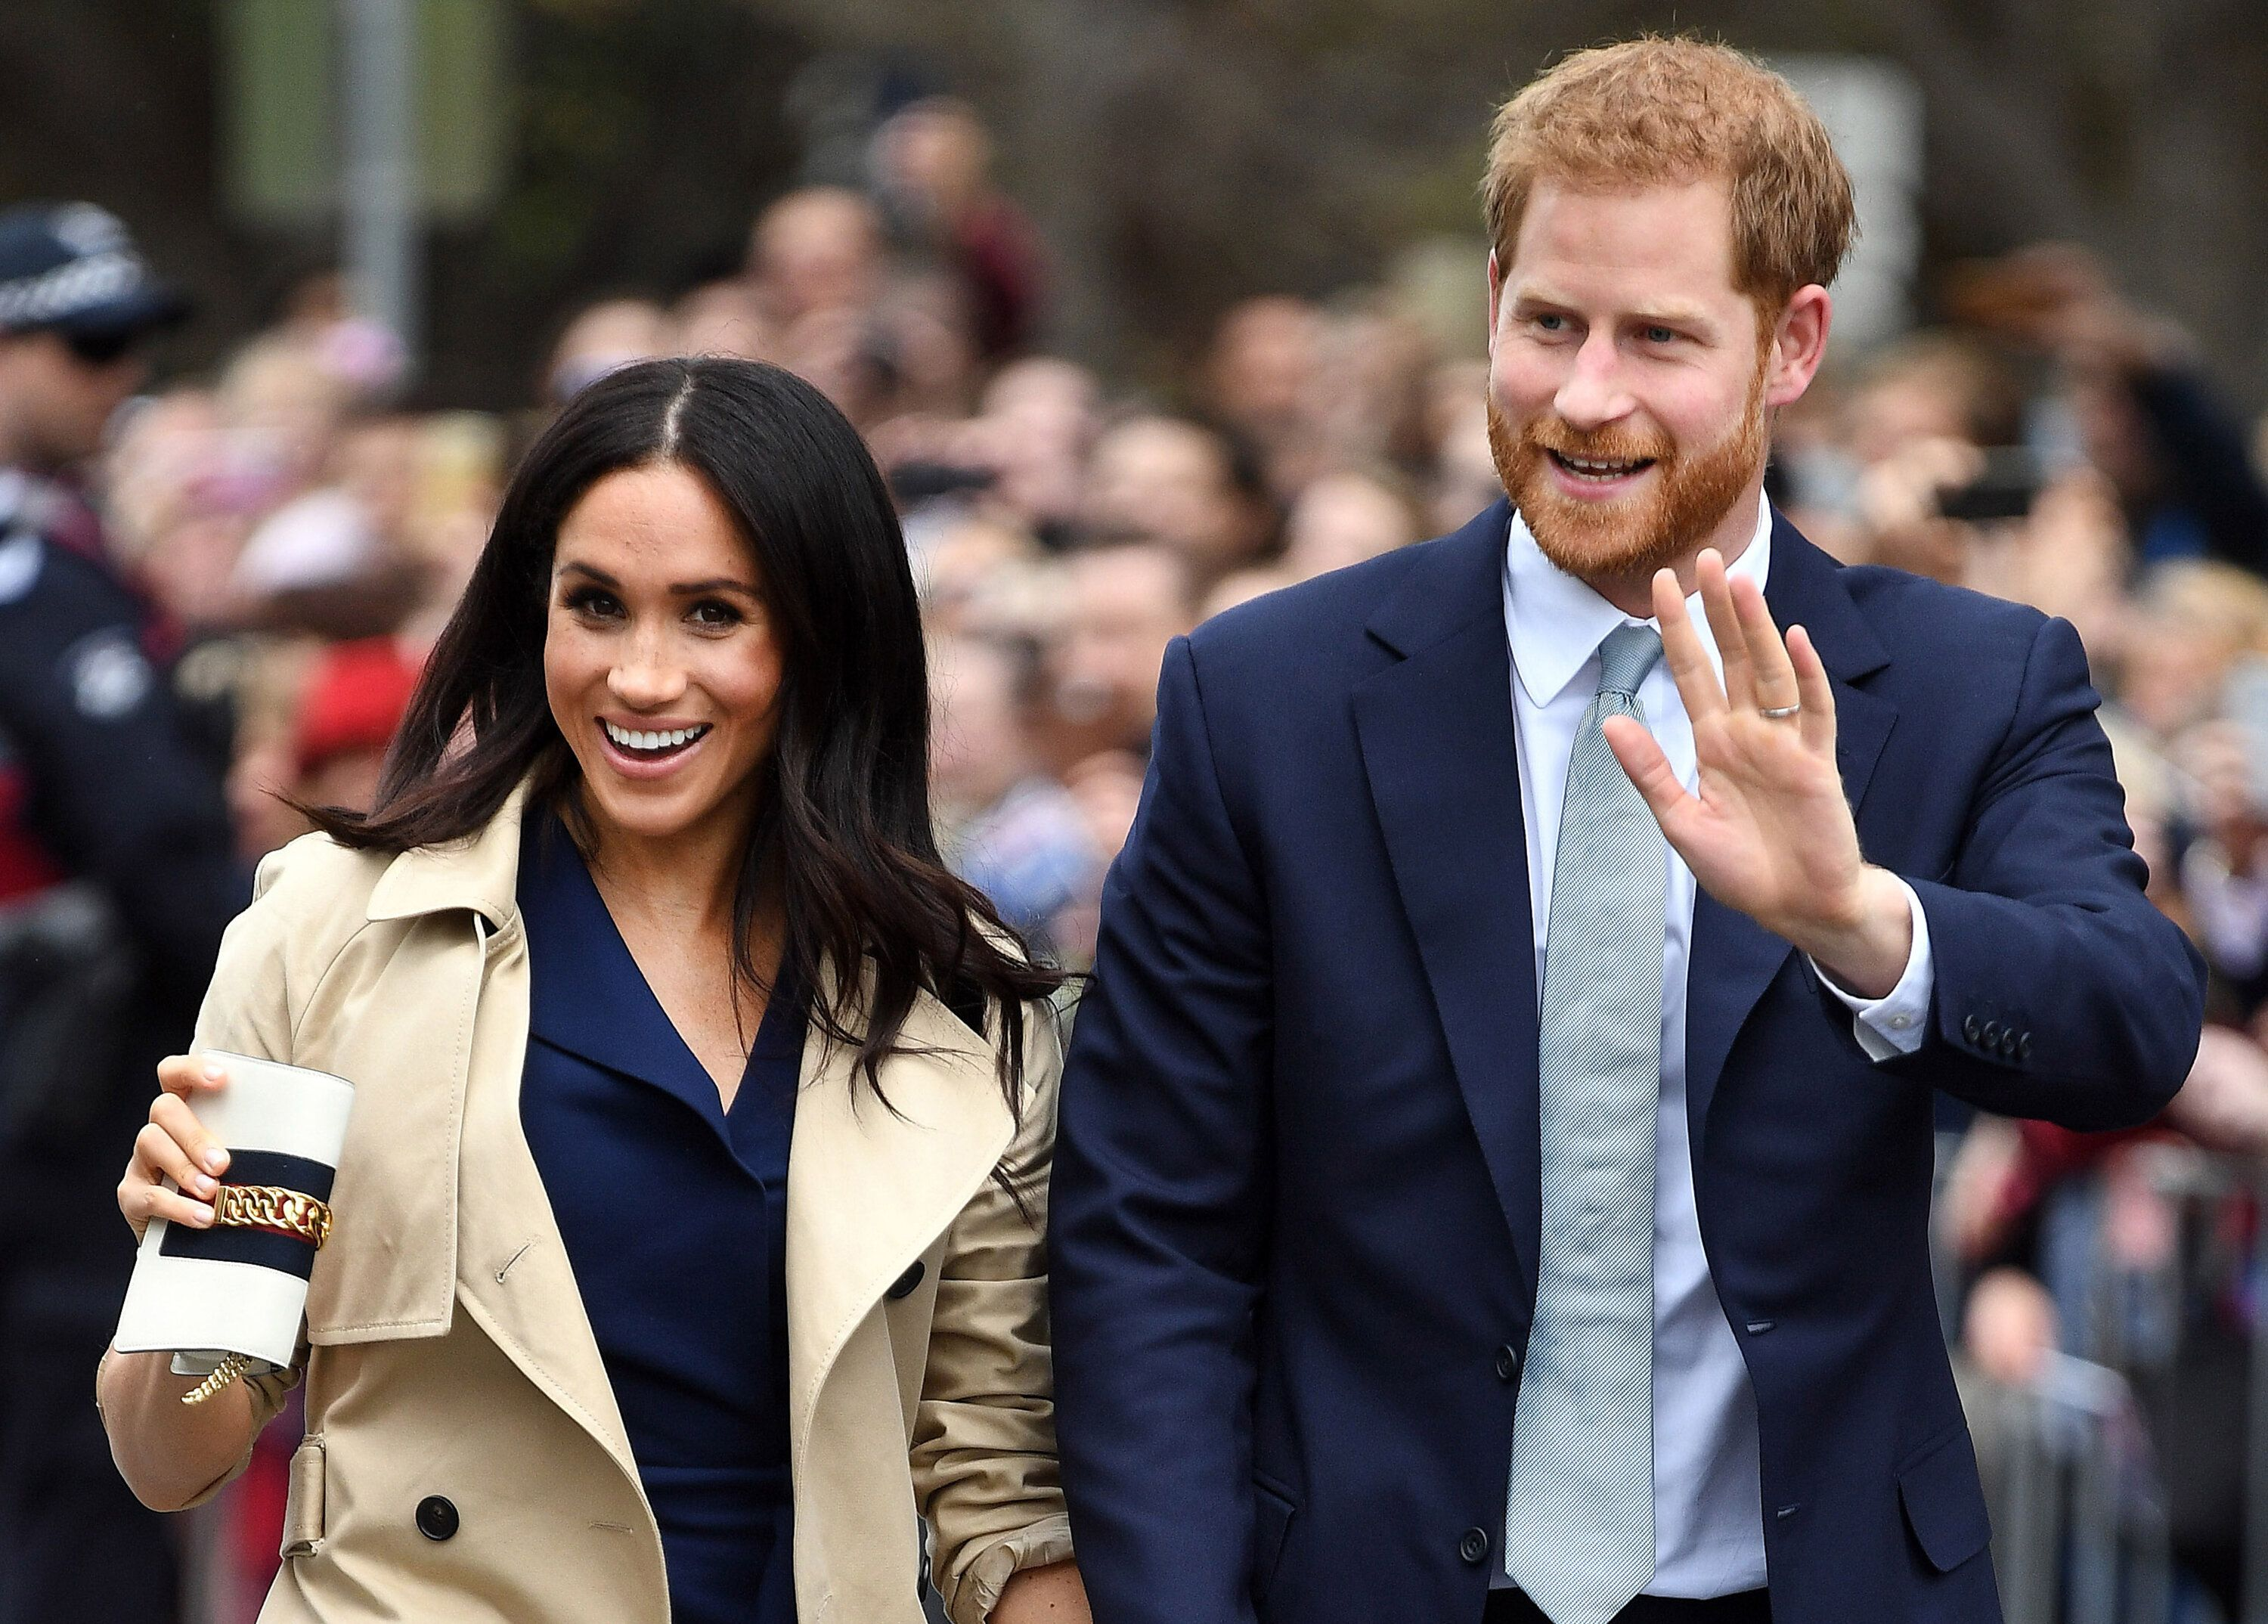 MELBOURNE, MELBOURNE - OCTOBER 18:  (NO UK SALES FOR 28 DAYS) Prince Harry, Duke of Sussex and Meghan, Duchess of Sussex attend  a public walk and greet at Government House on October 18, 2018 in Melbourne, Australia. The Duke and Duchess of Sussex are on their official 16-day Autumn tour visiting cities in Australia, Fiji, Tonga and New Zealand.  (Photo by Pool/Samir Hussein/WireImage)